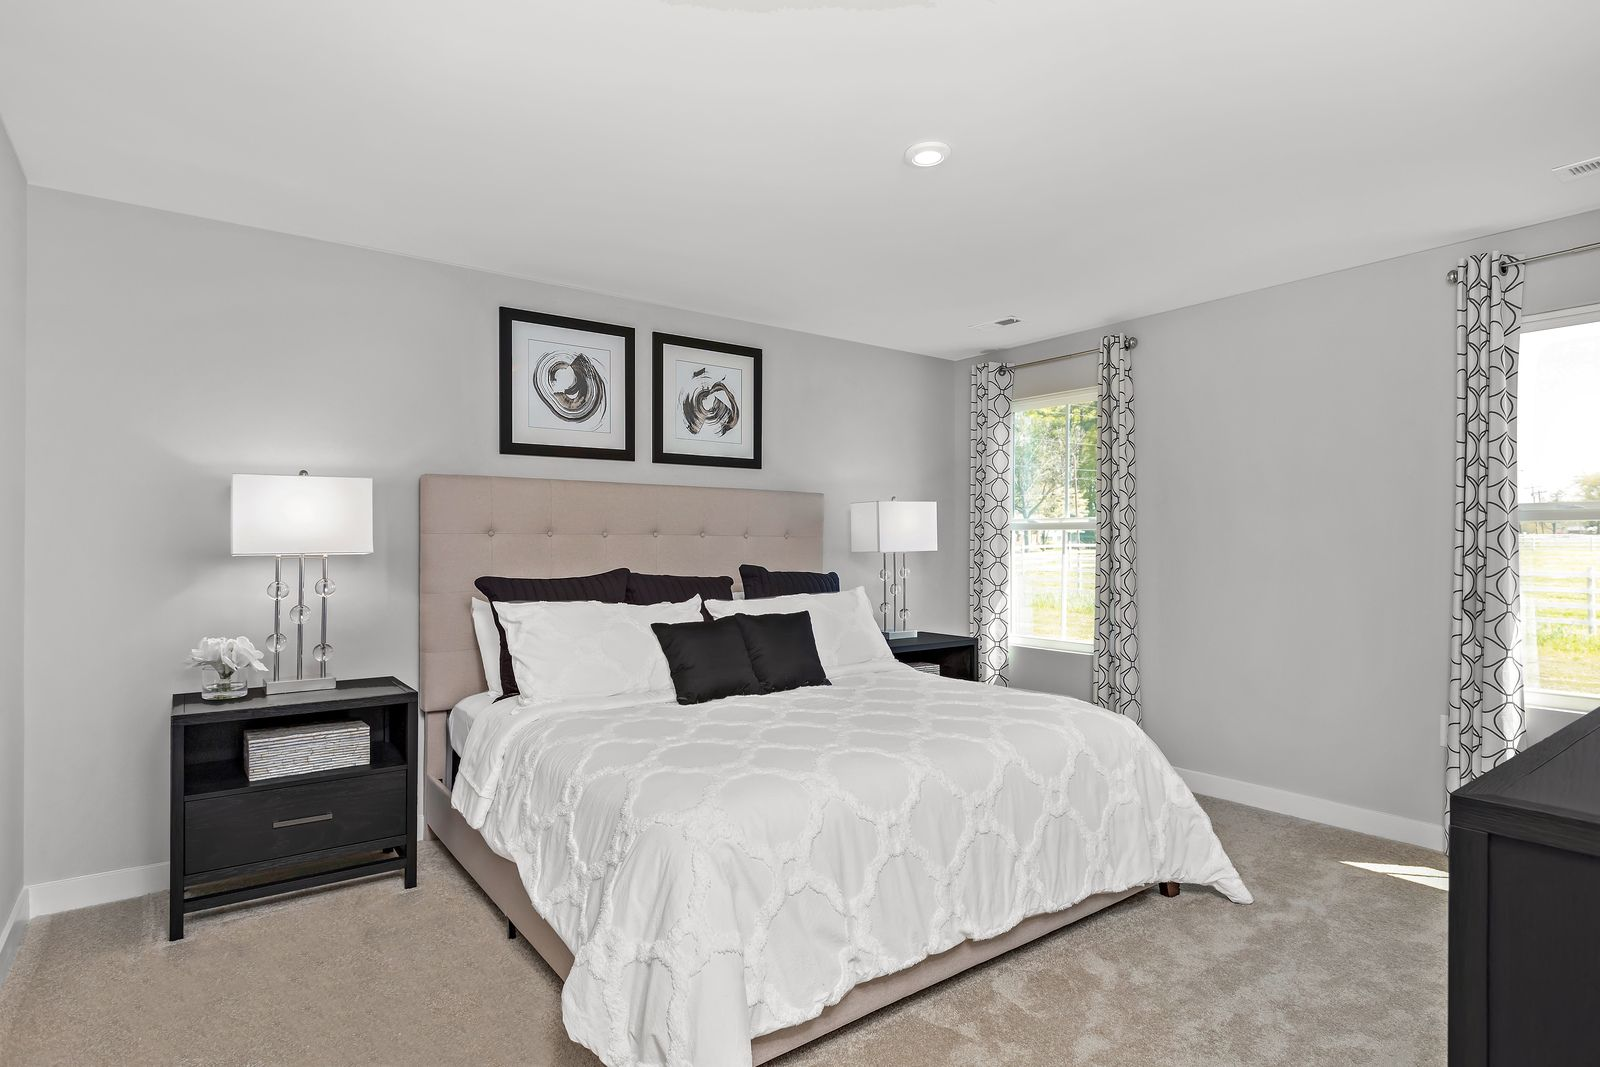 Bedroom featured in the Cayman By Ryan Homes in Cleveland, OH